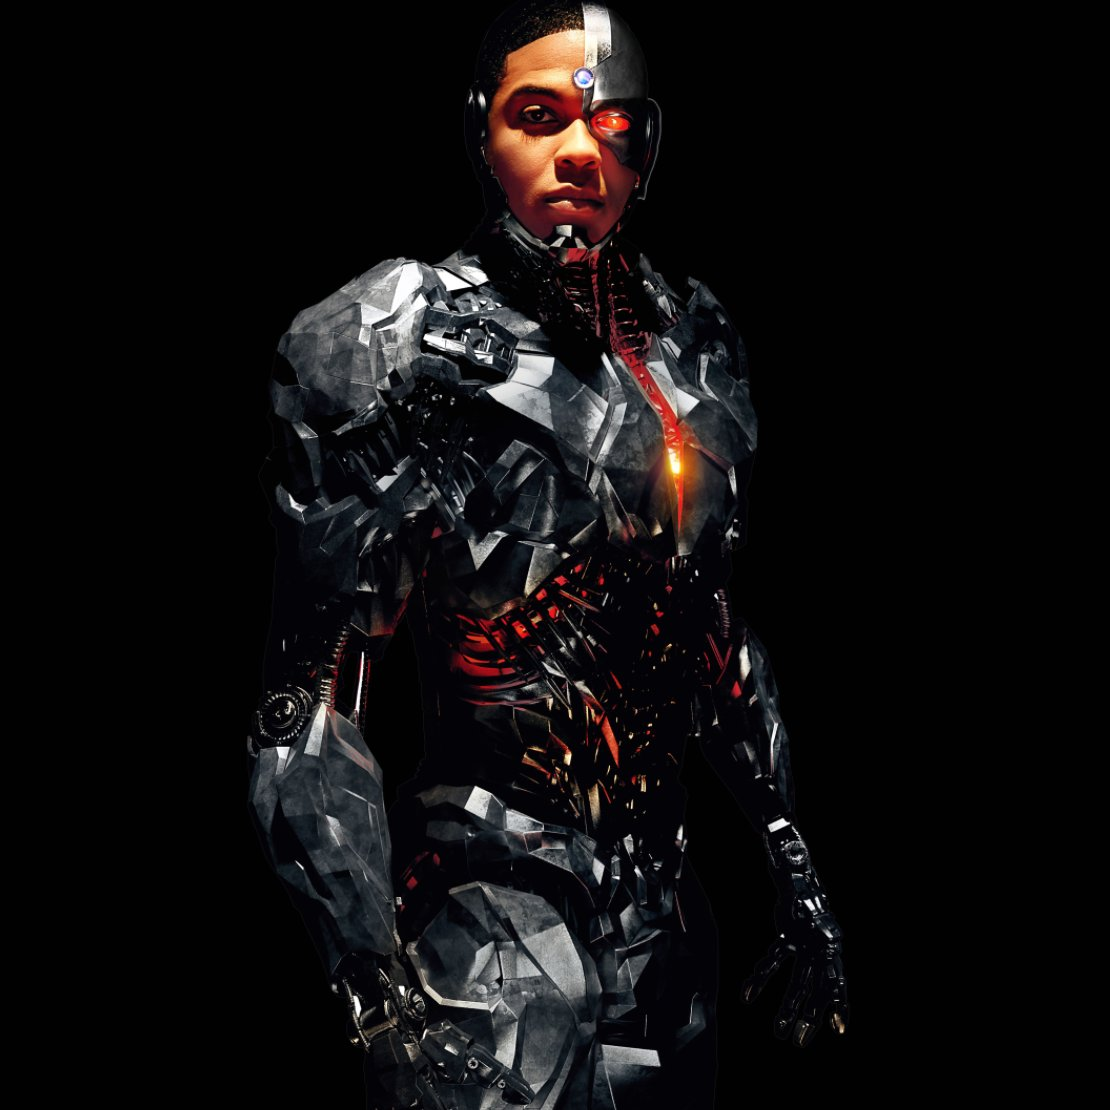 Ray Fisher says WB has informed him that he's officially been removed from 'The Flash'  'Despite the misconception, Cyborg's involvement was much larger than a cameo'